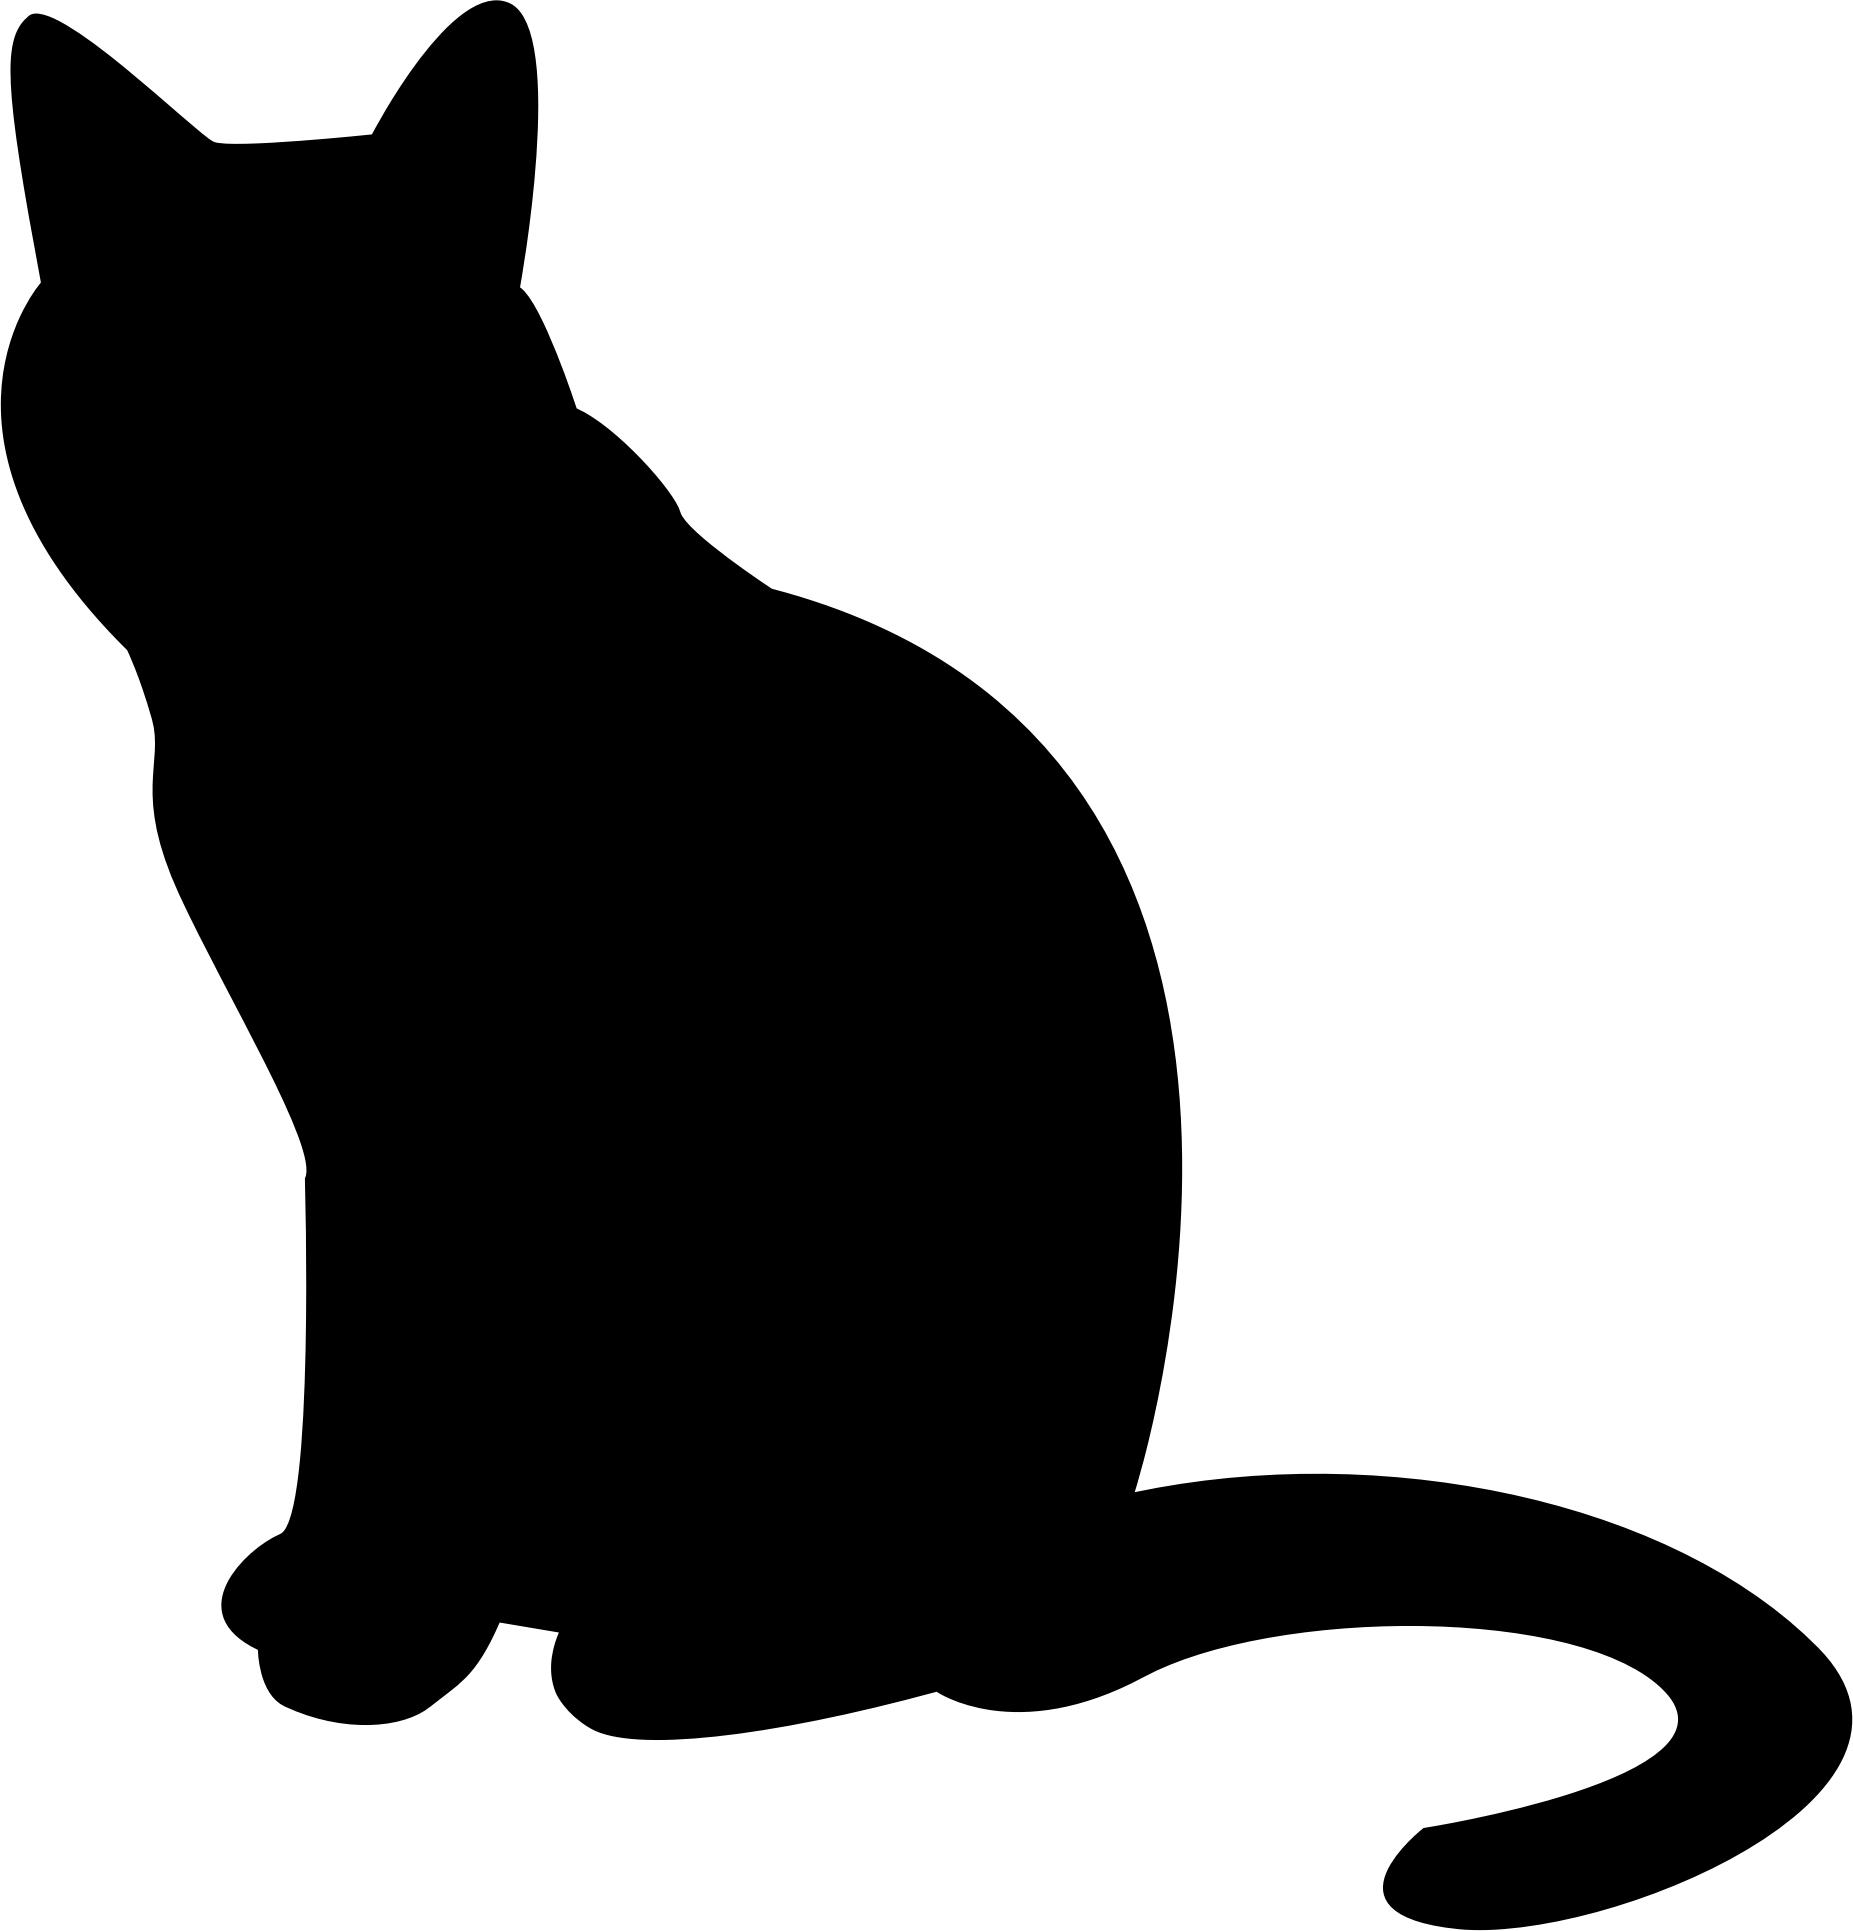 1853x1931 Free Cat Silhouette Icons Png, Cat S Lhouette Images